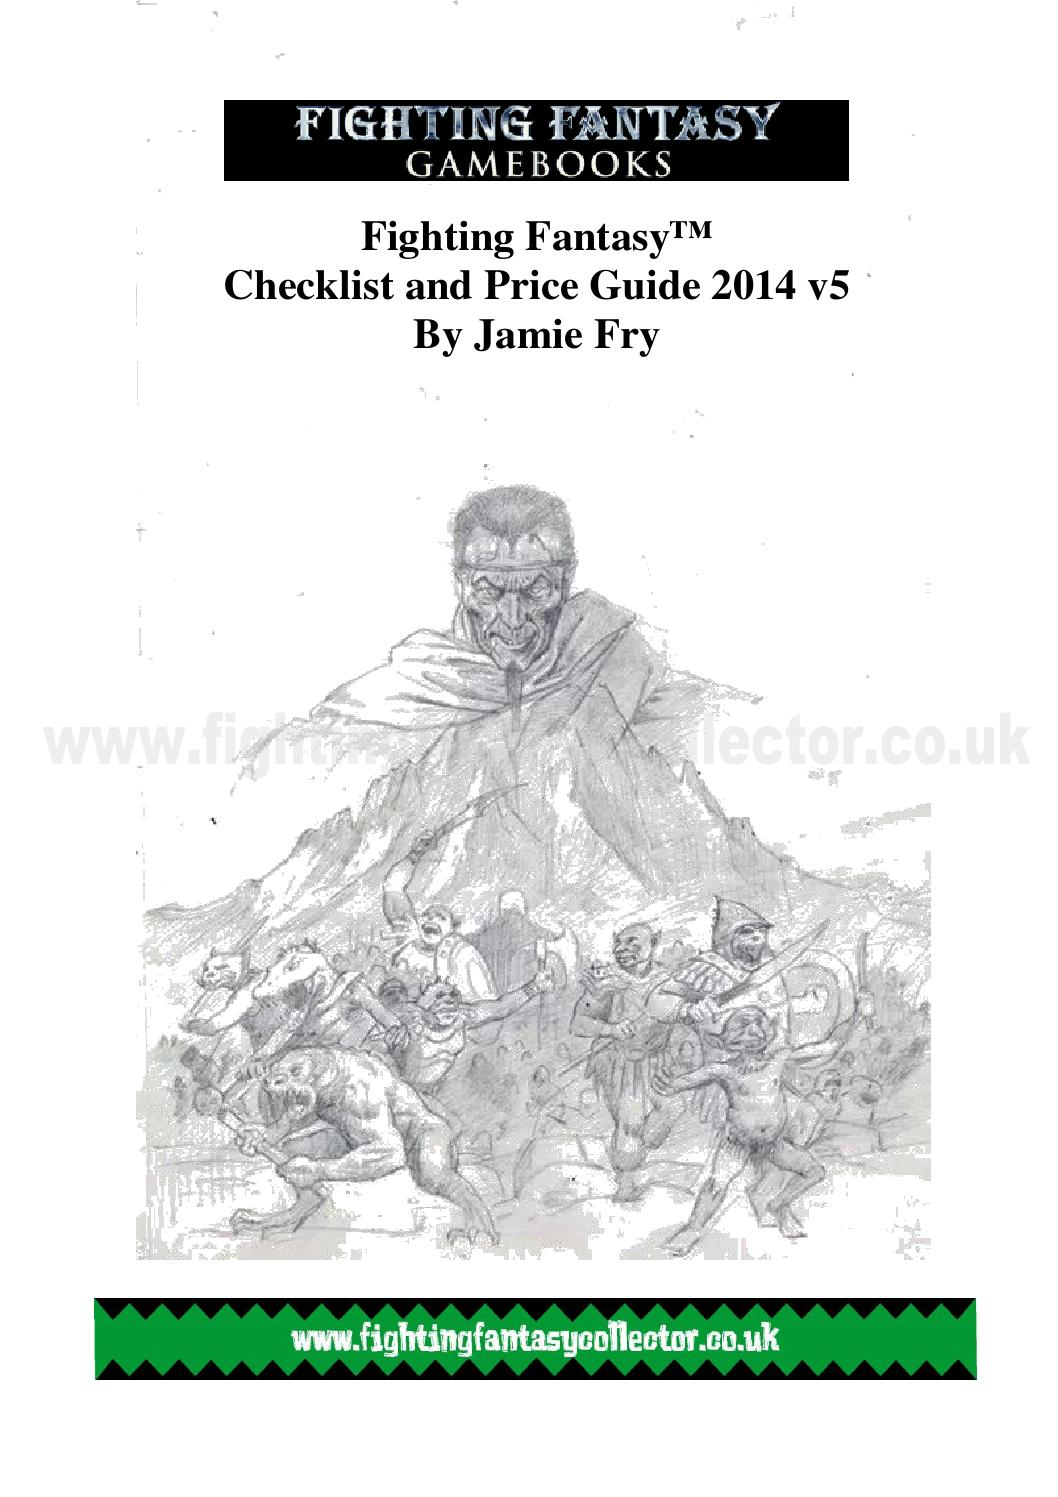 Fighting Fantasy Gamebooks checklist and price guide 2014 by Jamie Fry -  issuu